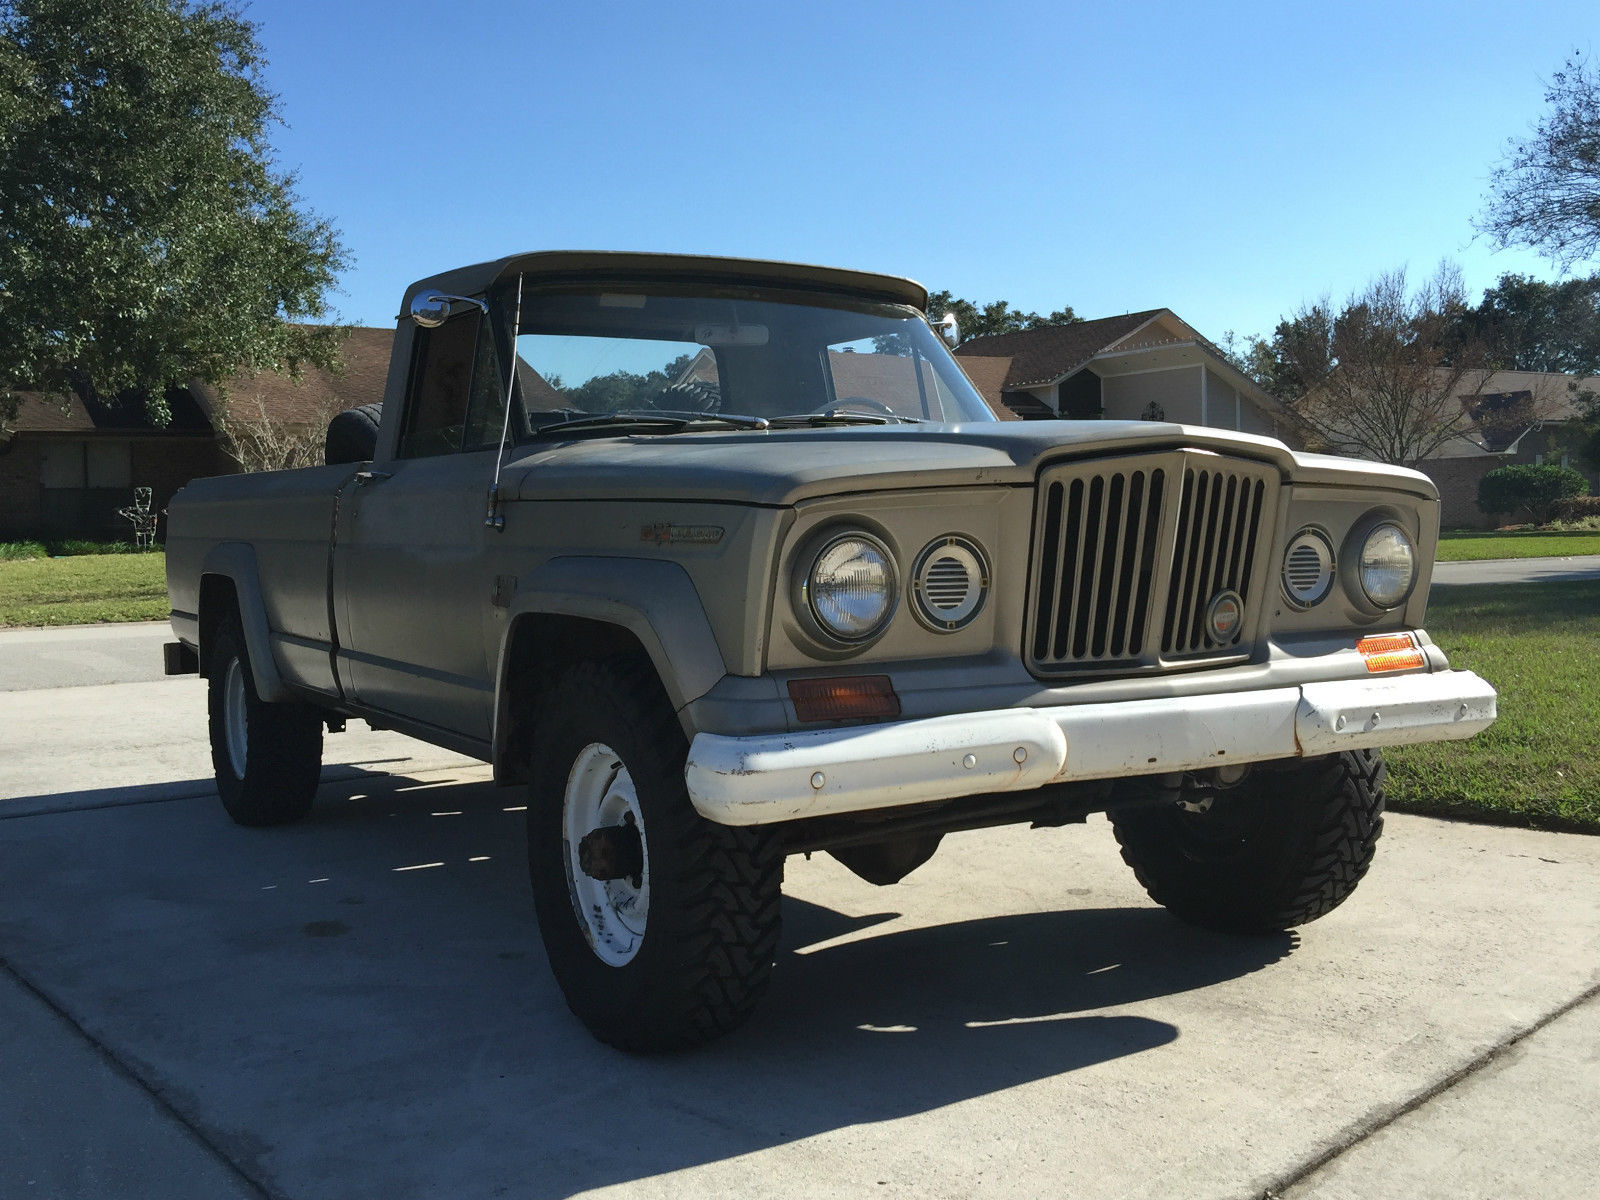 1967 Jeep Gladiator J10 J3000 Pickup Truck Barn Find for